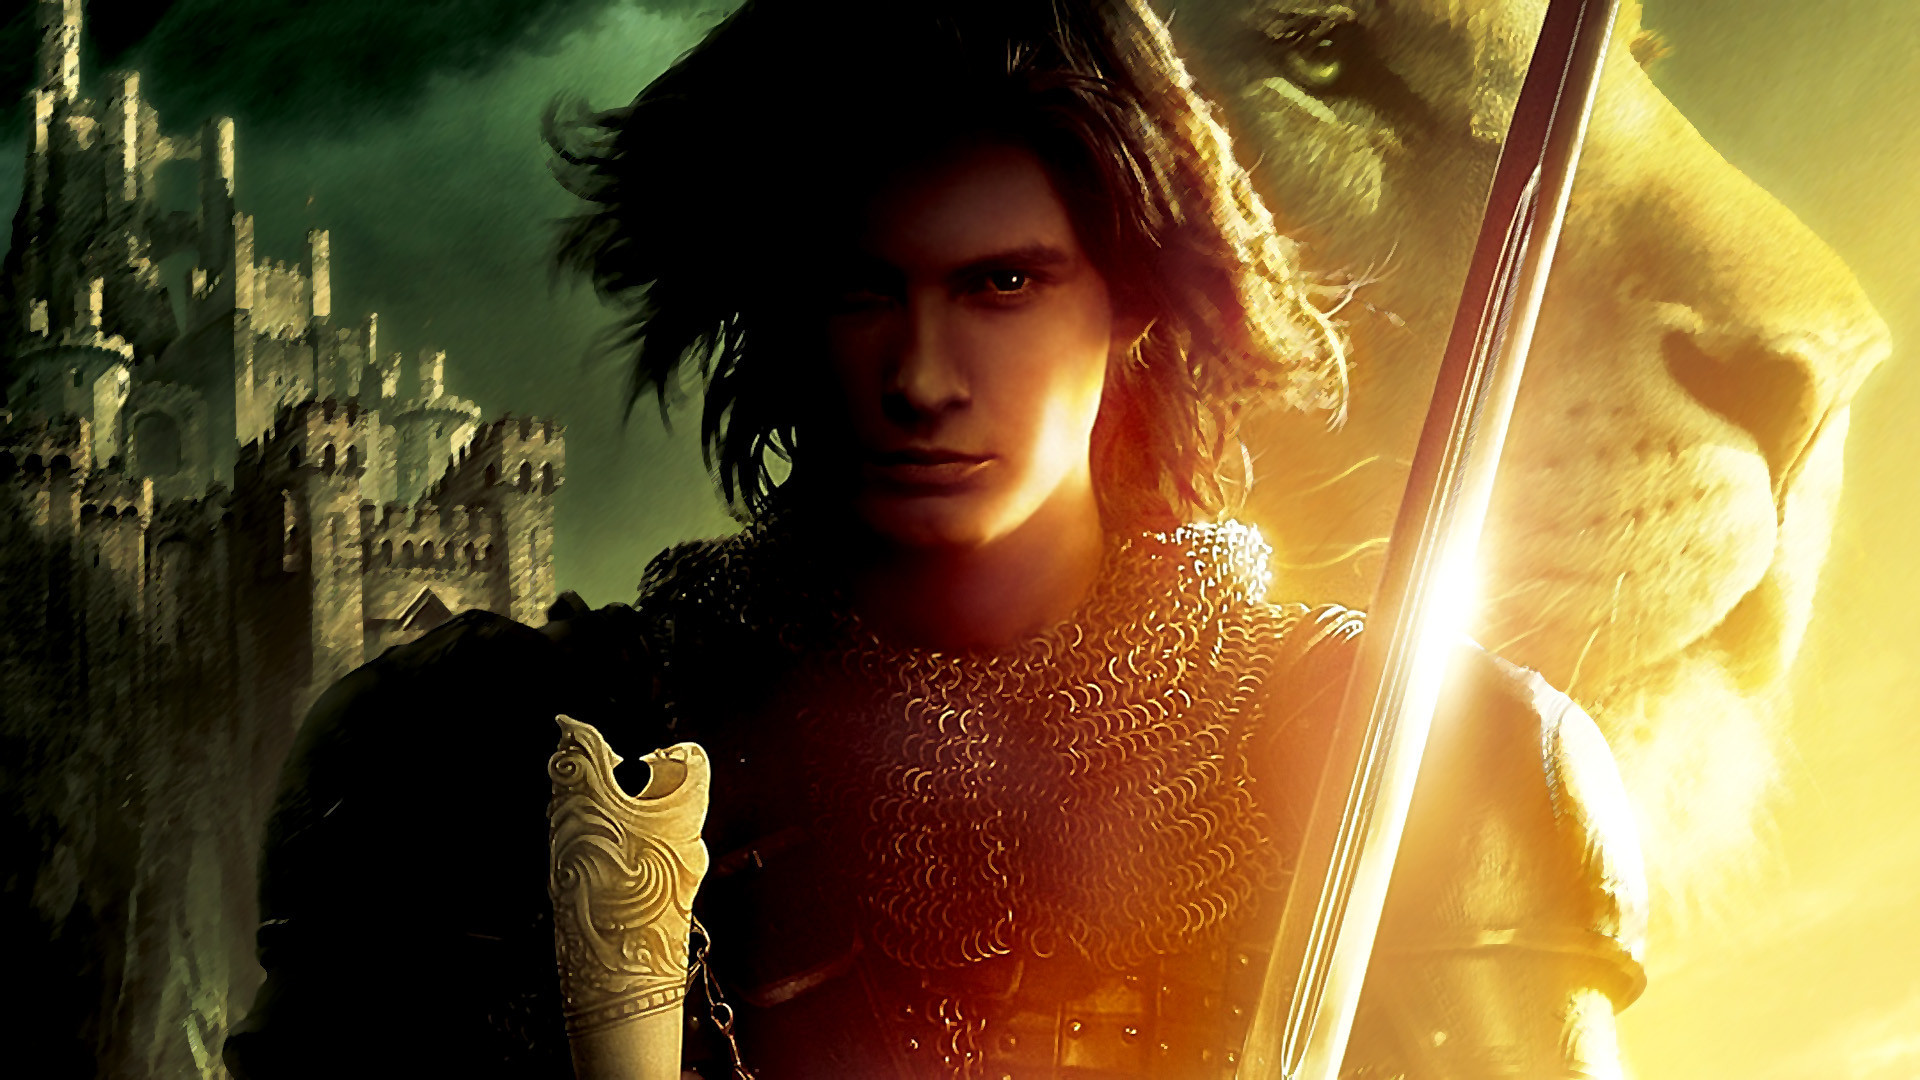 1920x1080 Prince Caspian images Narnia: Prince Caspian HD wallpaper and background  photos